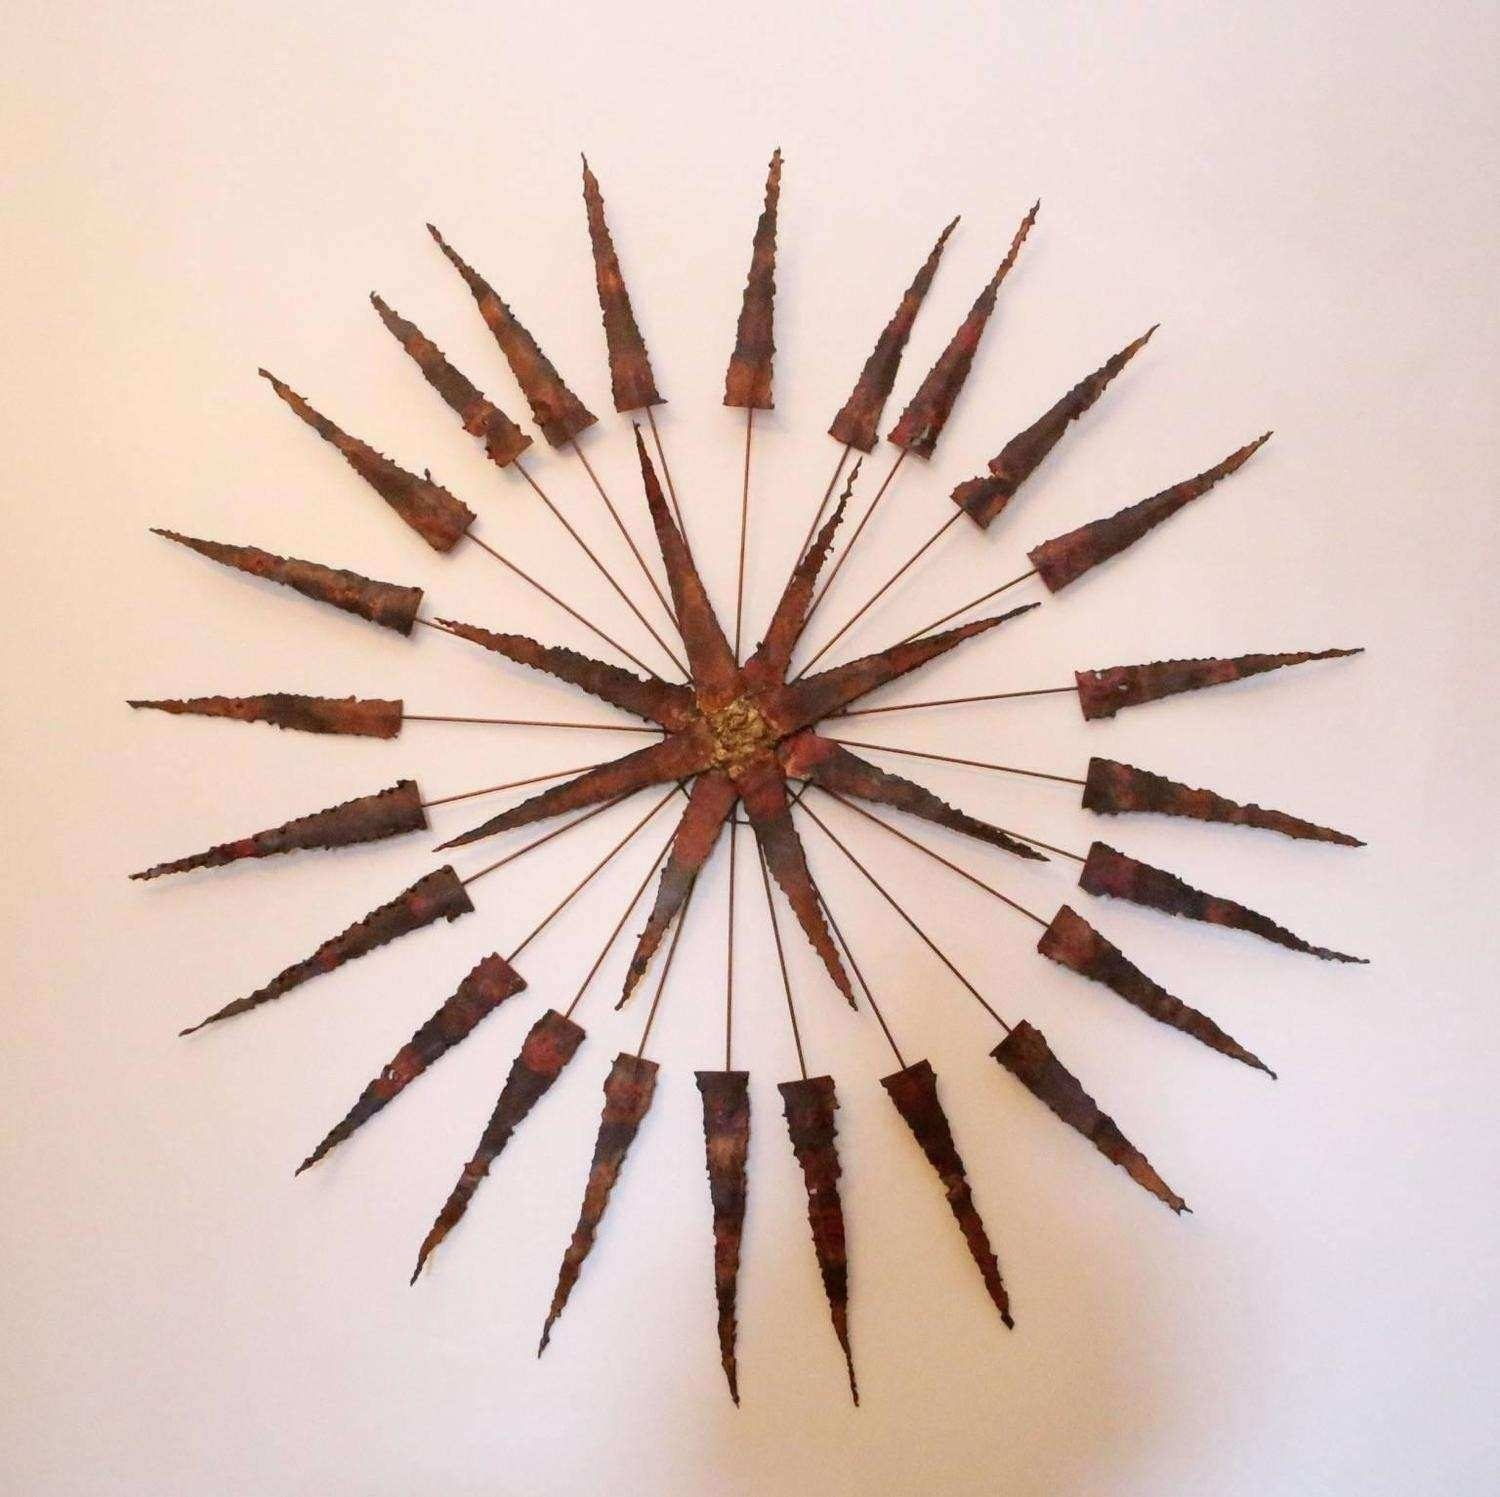 Starburst Wall Art Awesome Starburst Metal Wall Sculpture For Sale Intended For Most Recently Released Starburst Wall Art (Gallery 20 of 20)